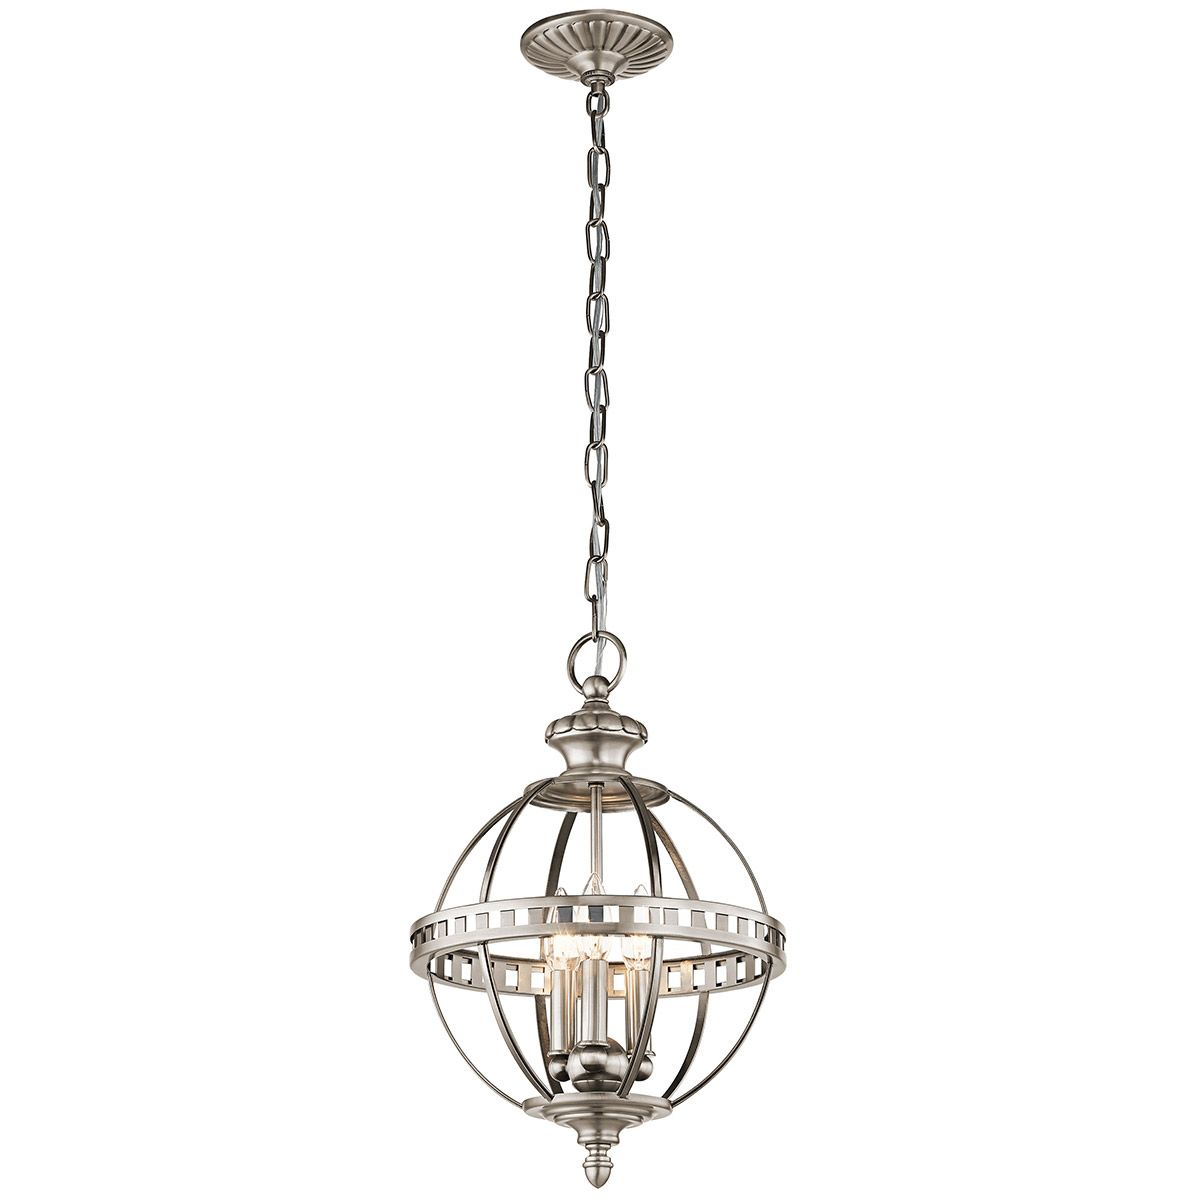 Kichler Halleron 3 Light Pendant In Classic Pewter